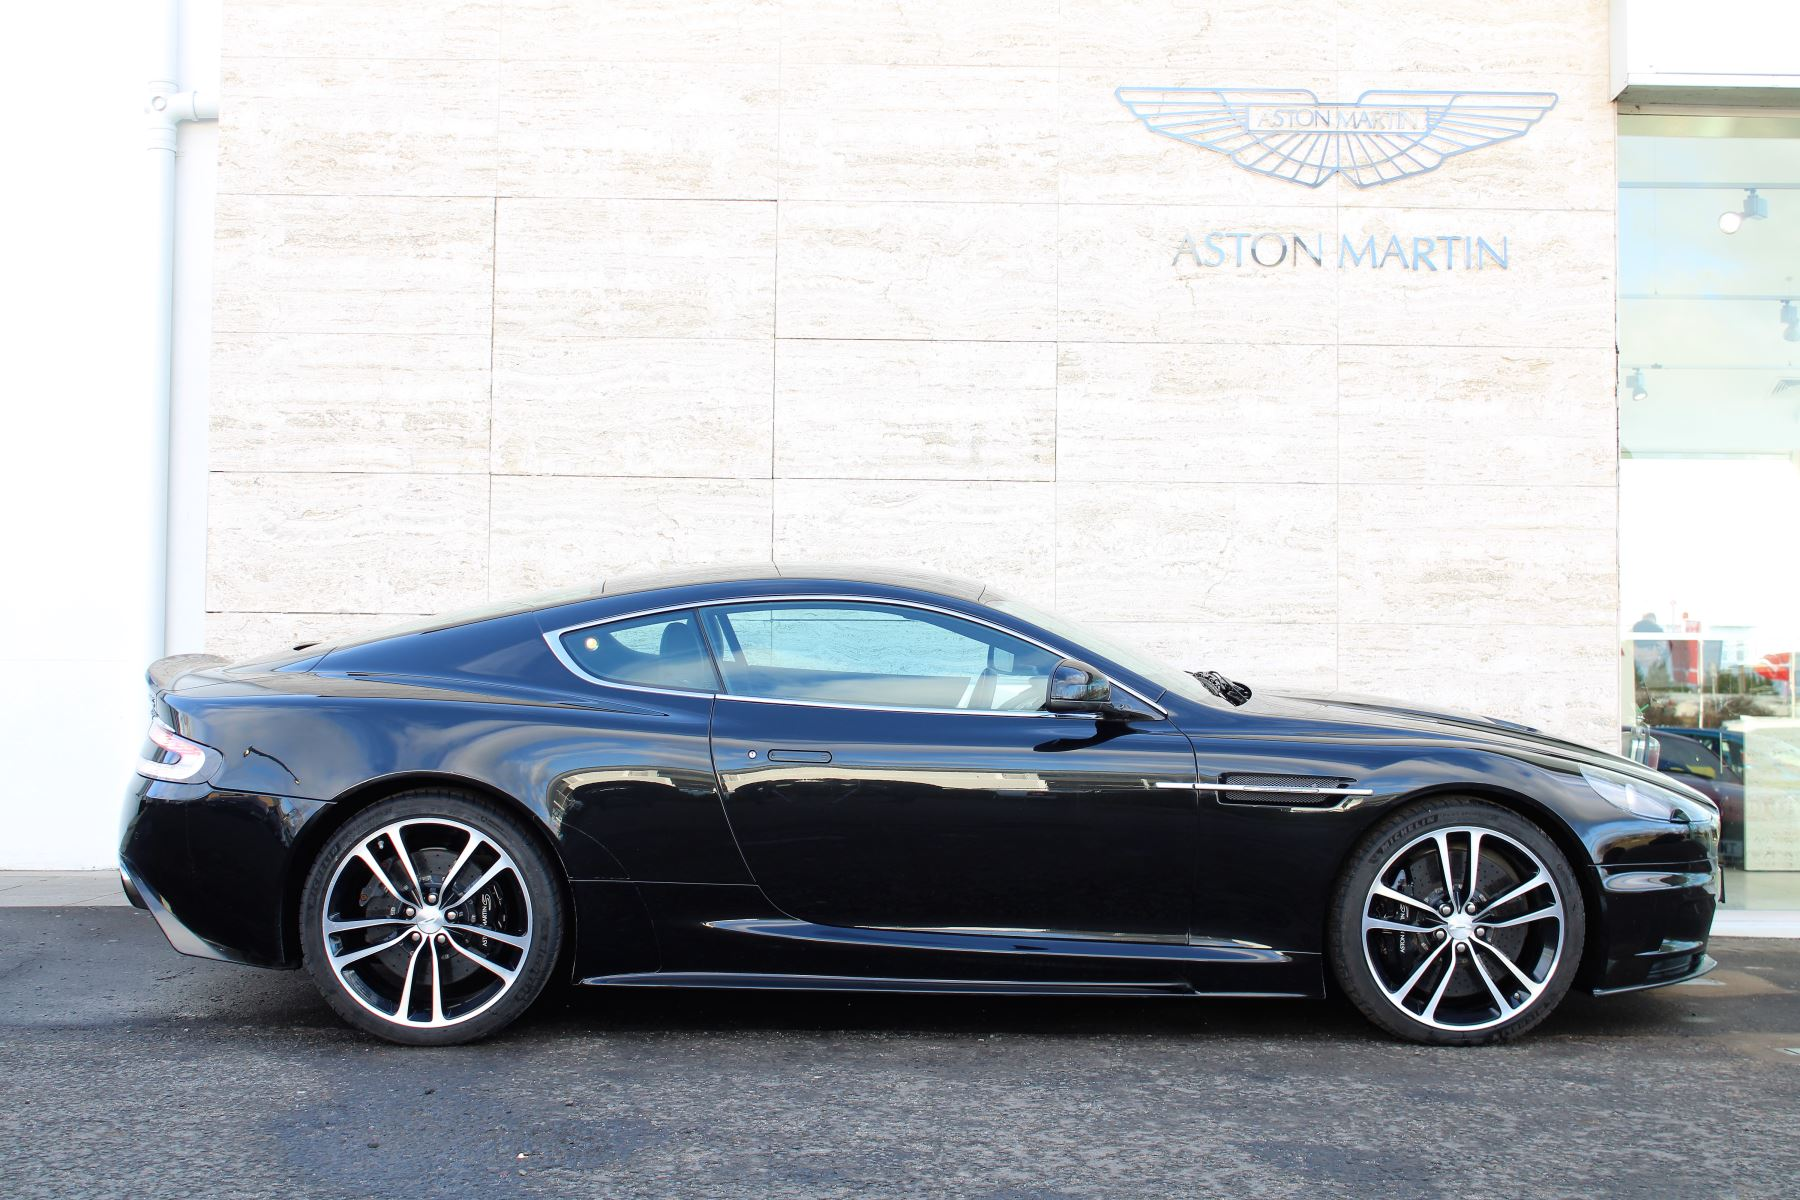 Aston Martin DBS V12 CARBON EDITION 2dr Touchtronic image 5